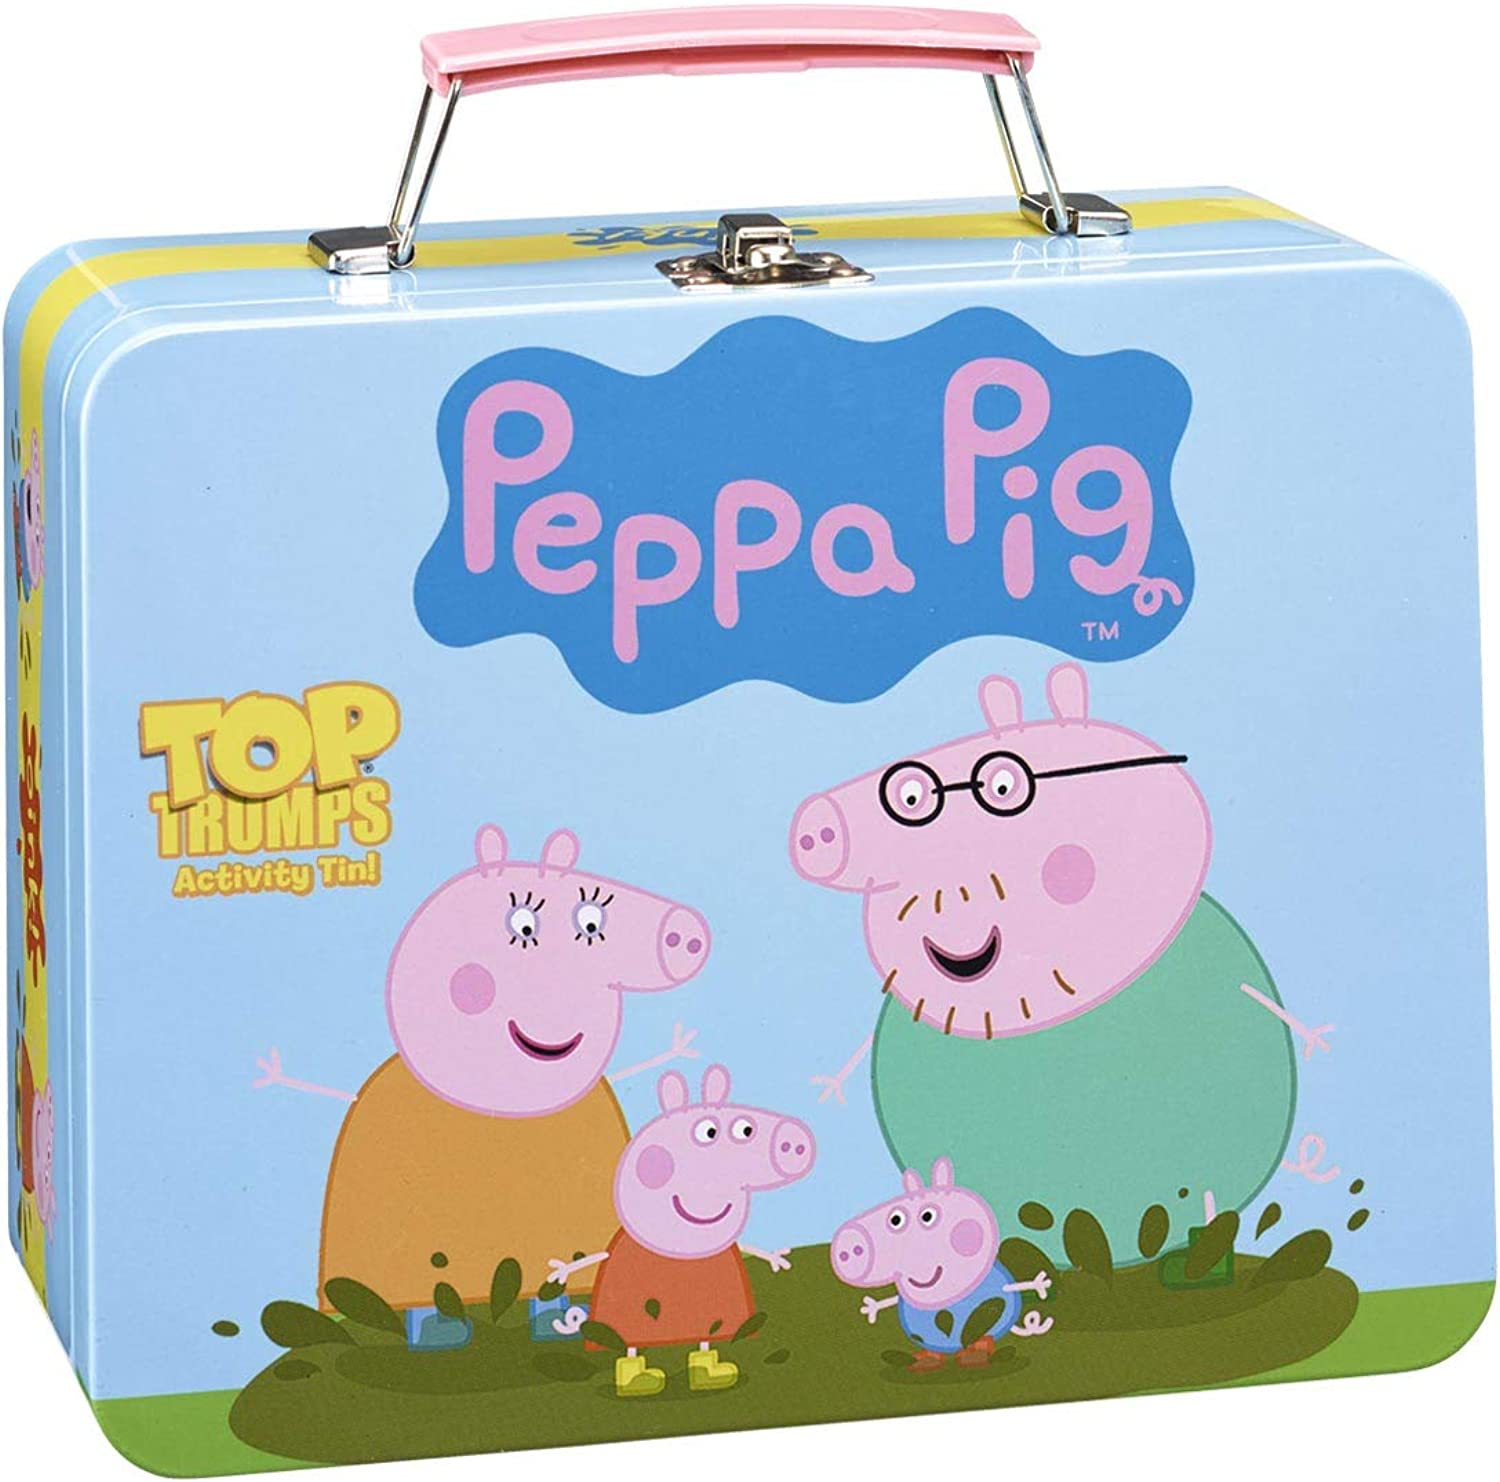 Peppa Pig Collector's Tin Top Trumps Card Game   Educational Card Games